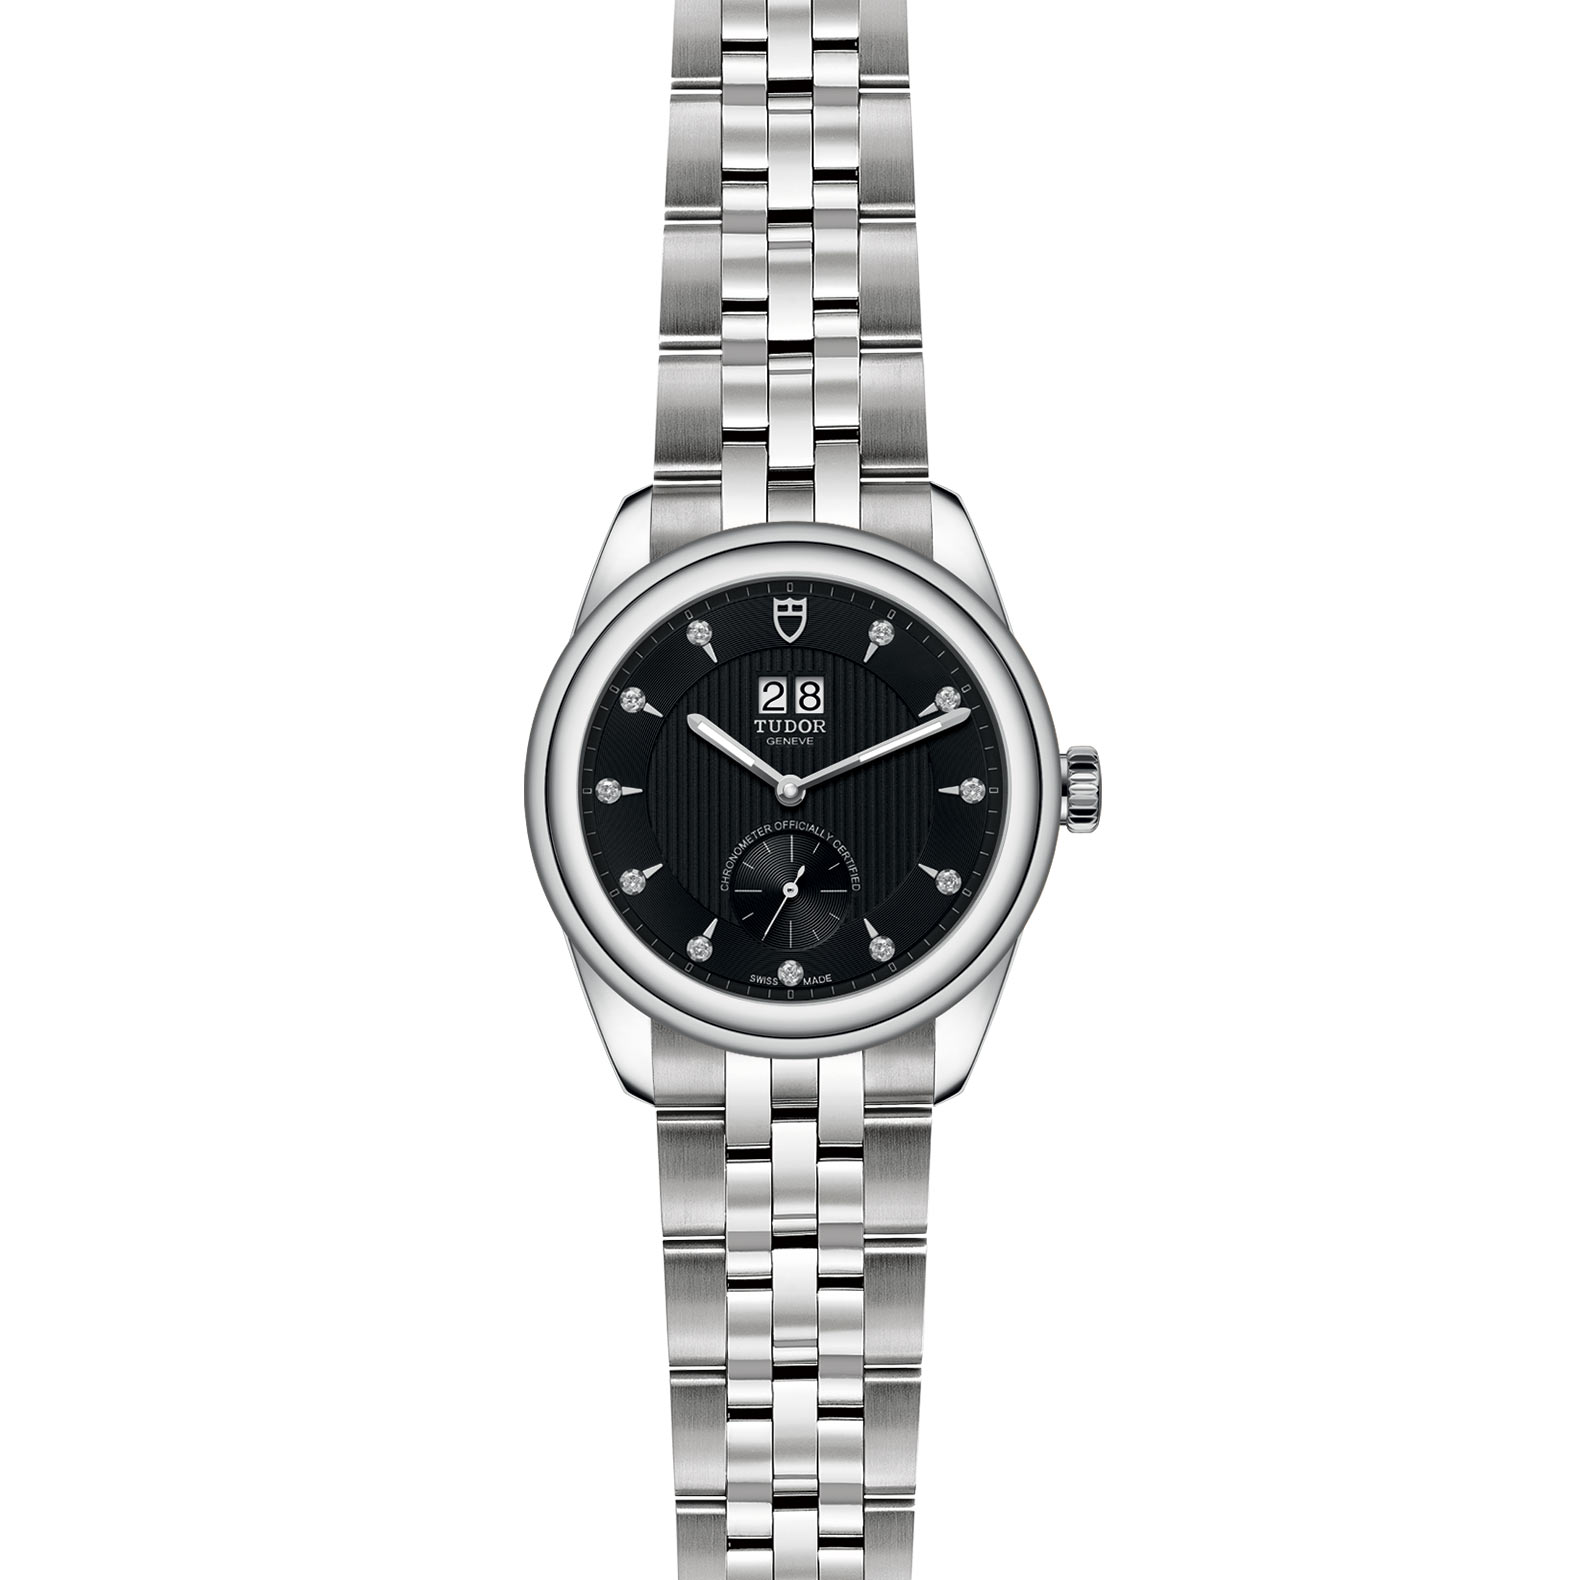 TUDOR Glamour Double Date M57100 0004 Frontfacing